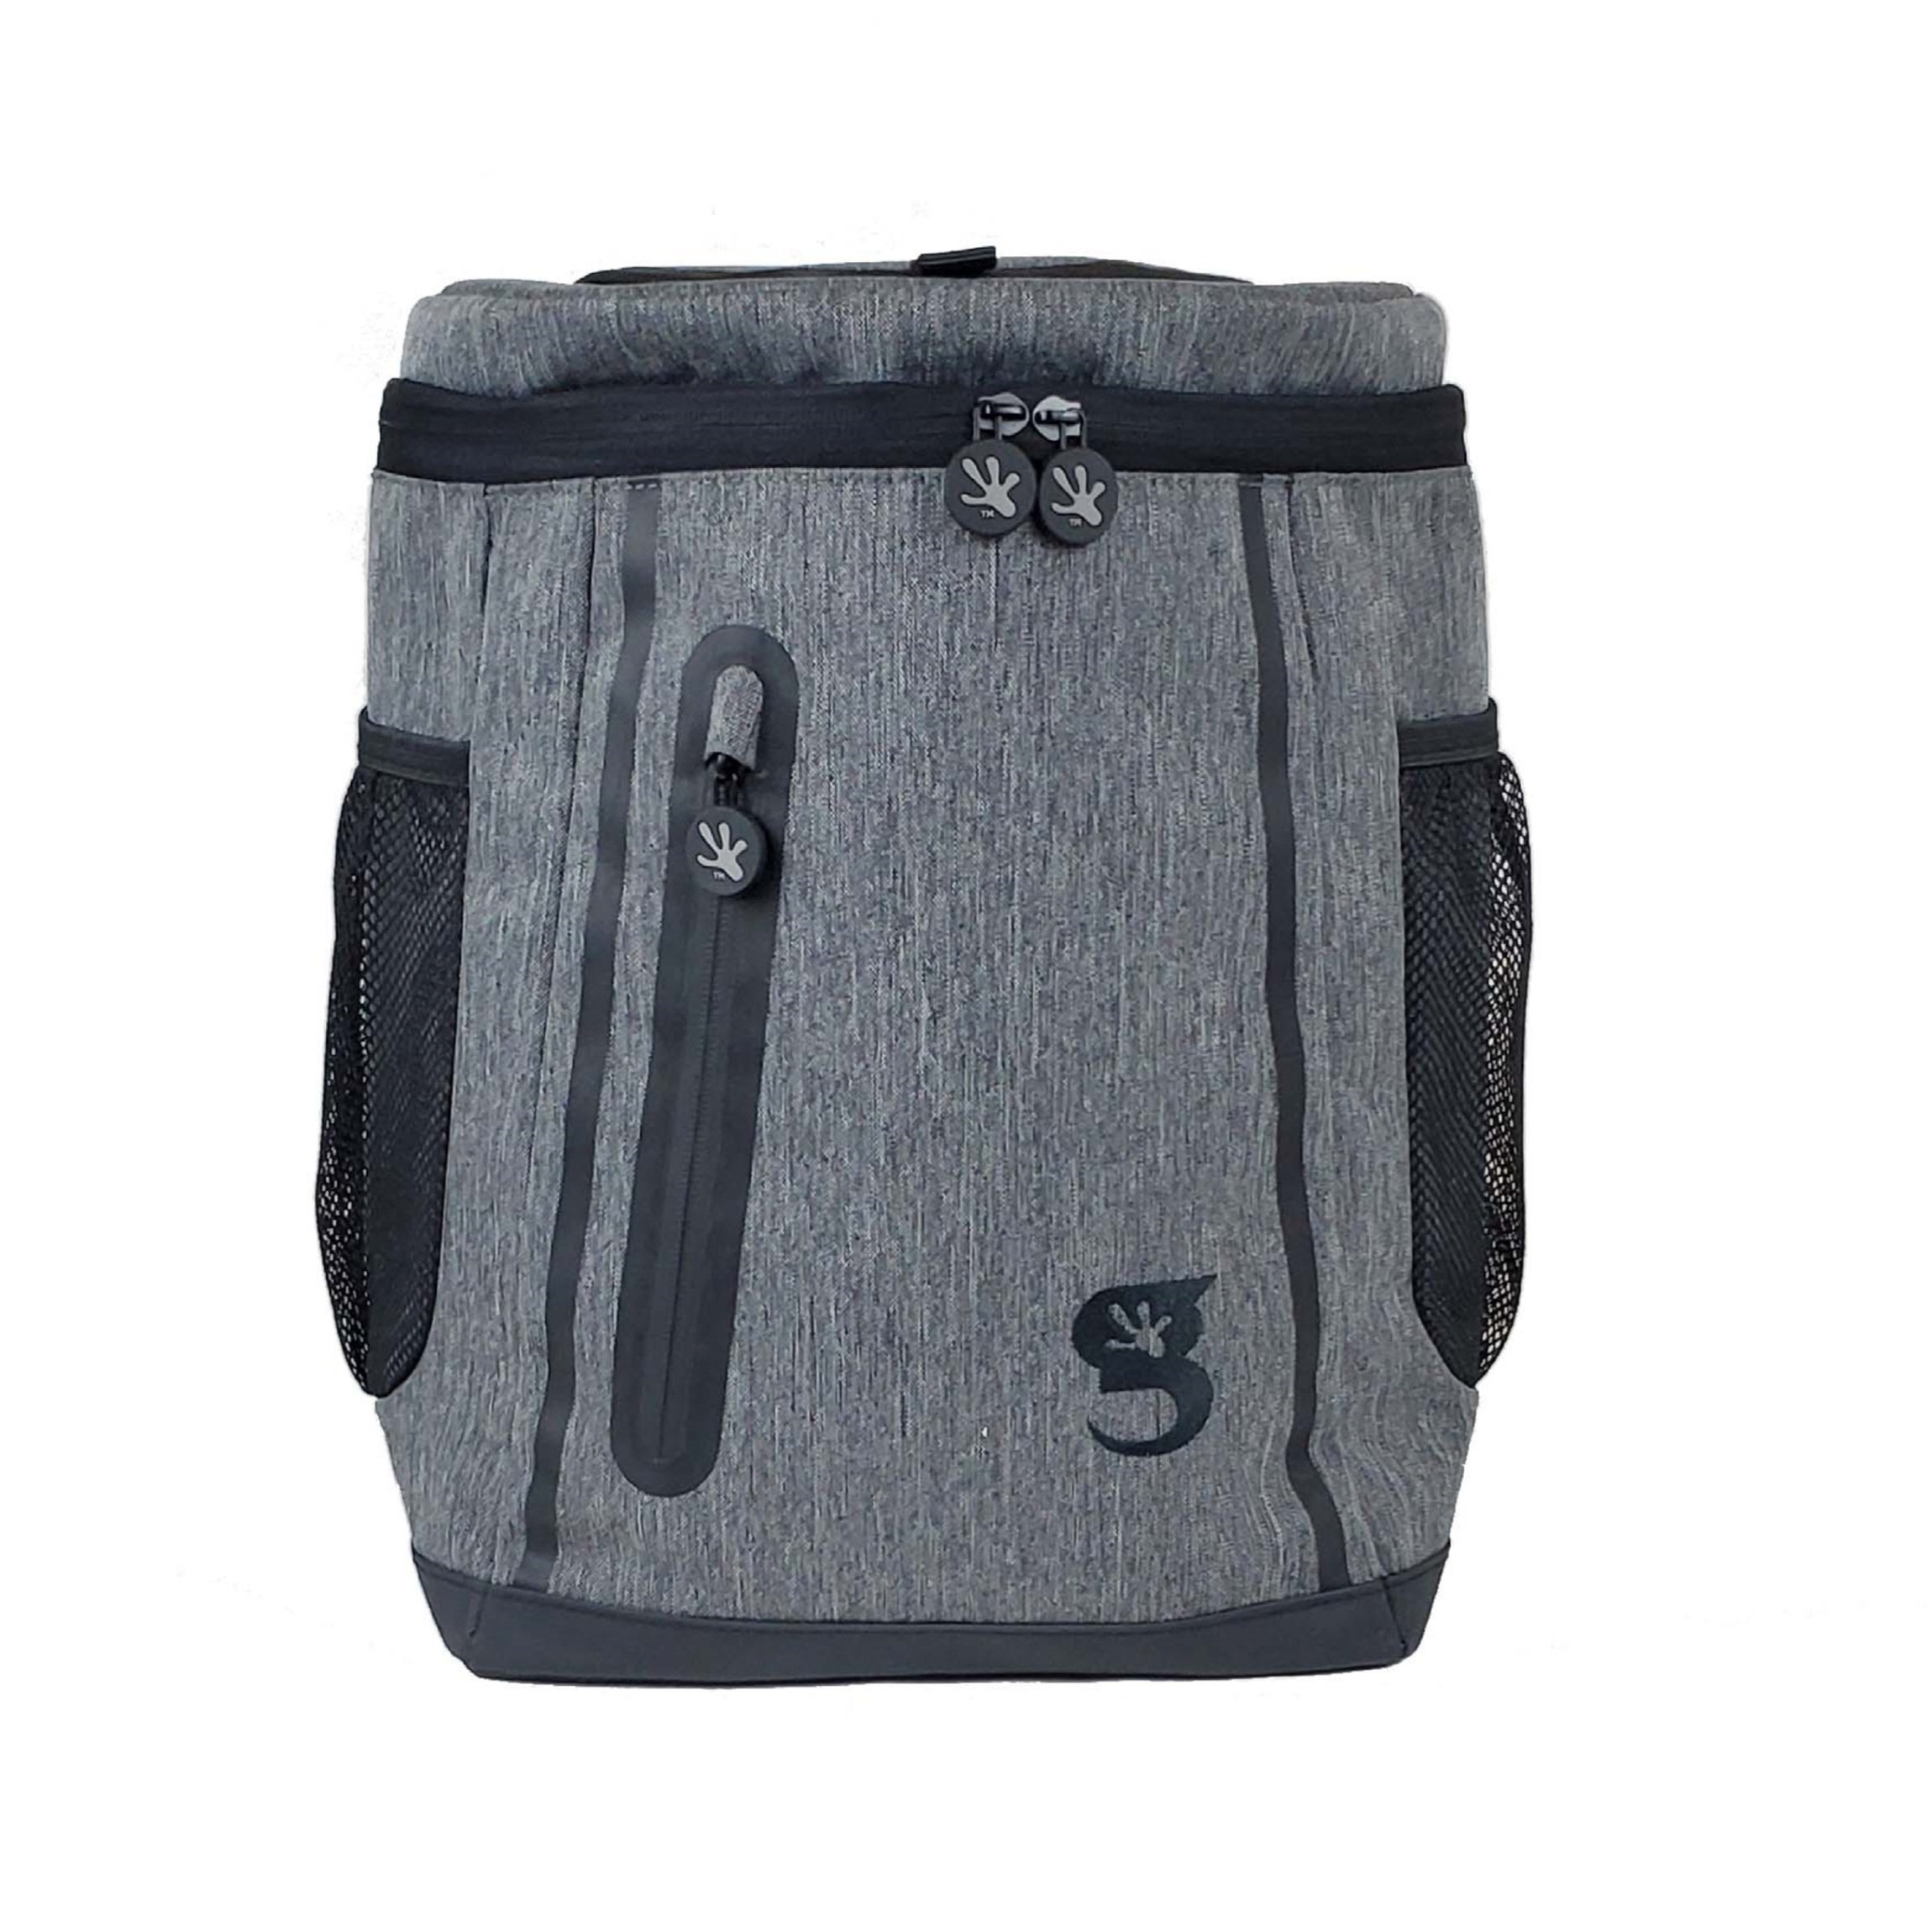 Easy Access Lid Holds/ Up to 24/ Cans or/ 18/ Bottles geckobrands/ Opticool Backpack/ Cooler 3 Pockets